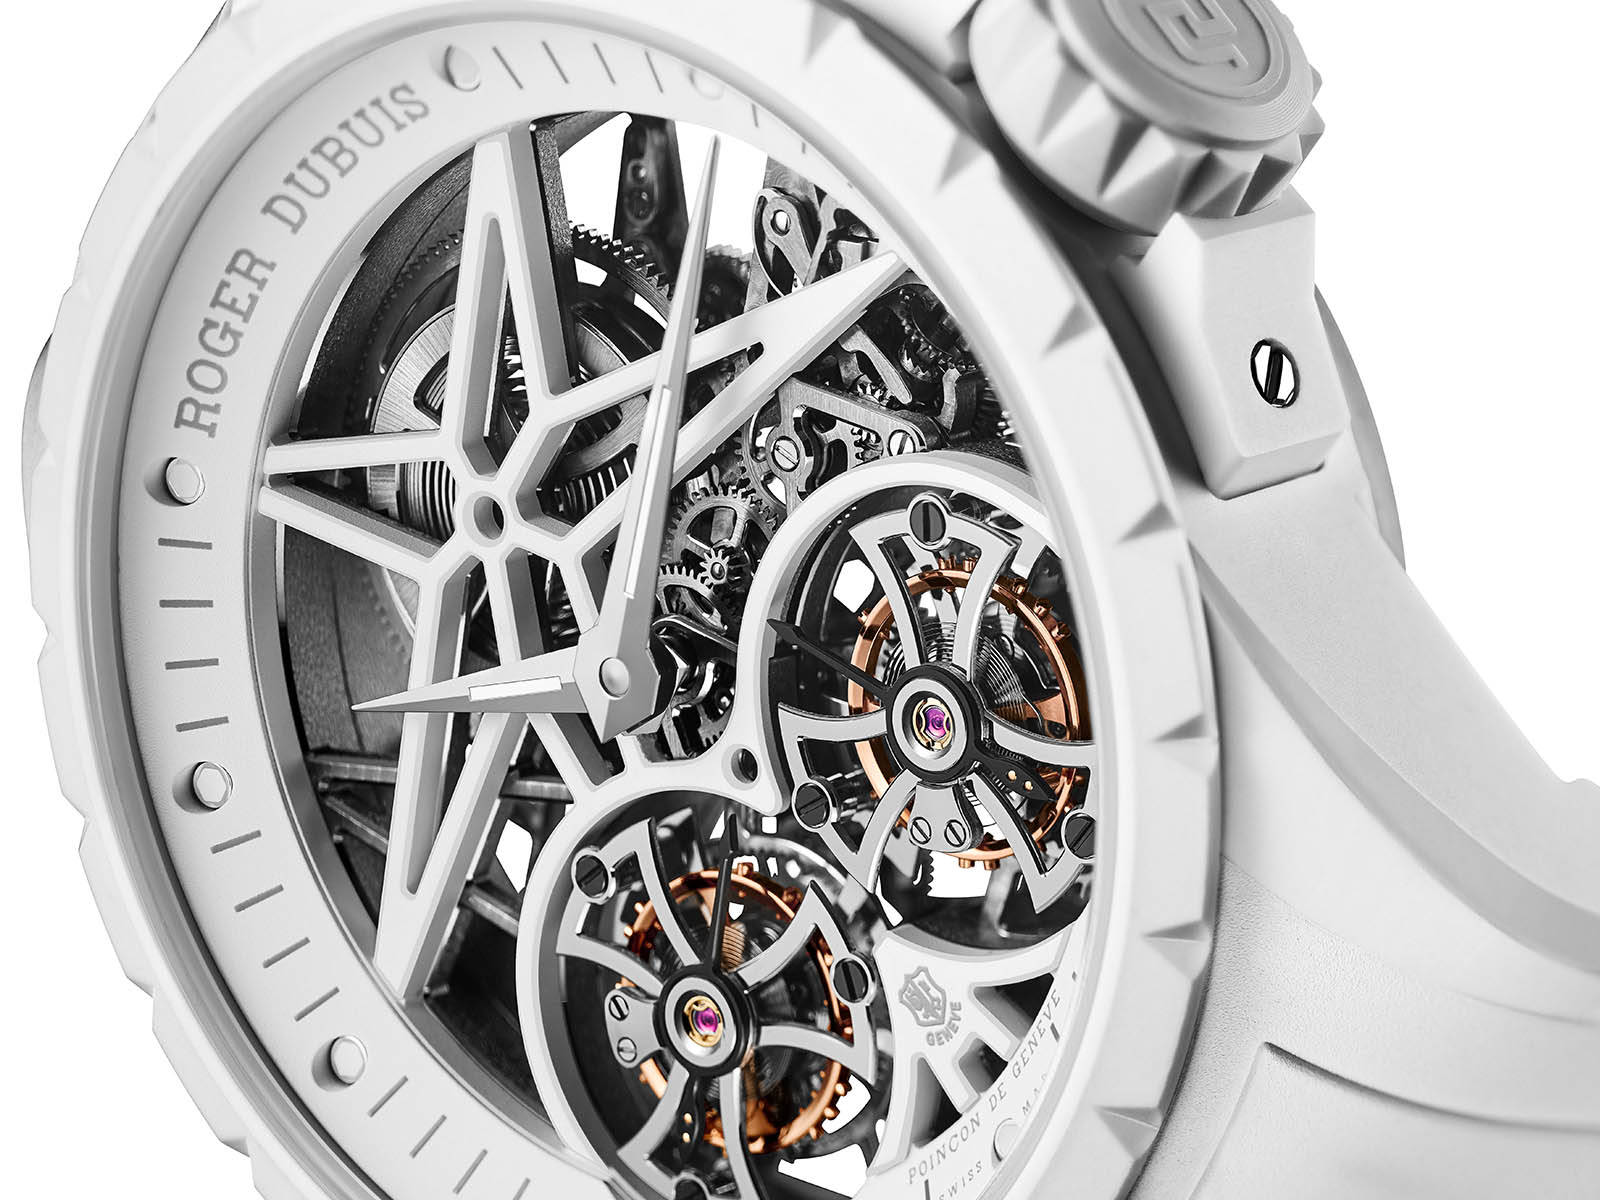 rddbex0900-roger-dubuis-excalibur-twofold-3.jpg